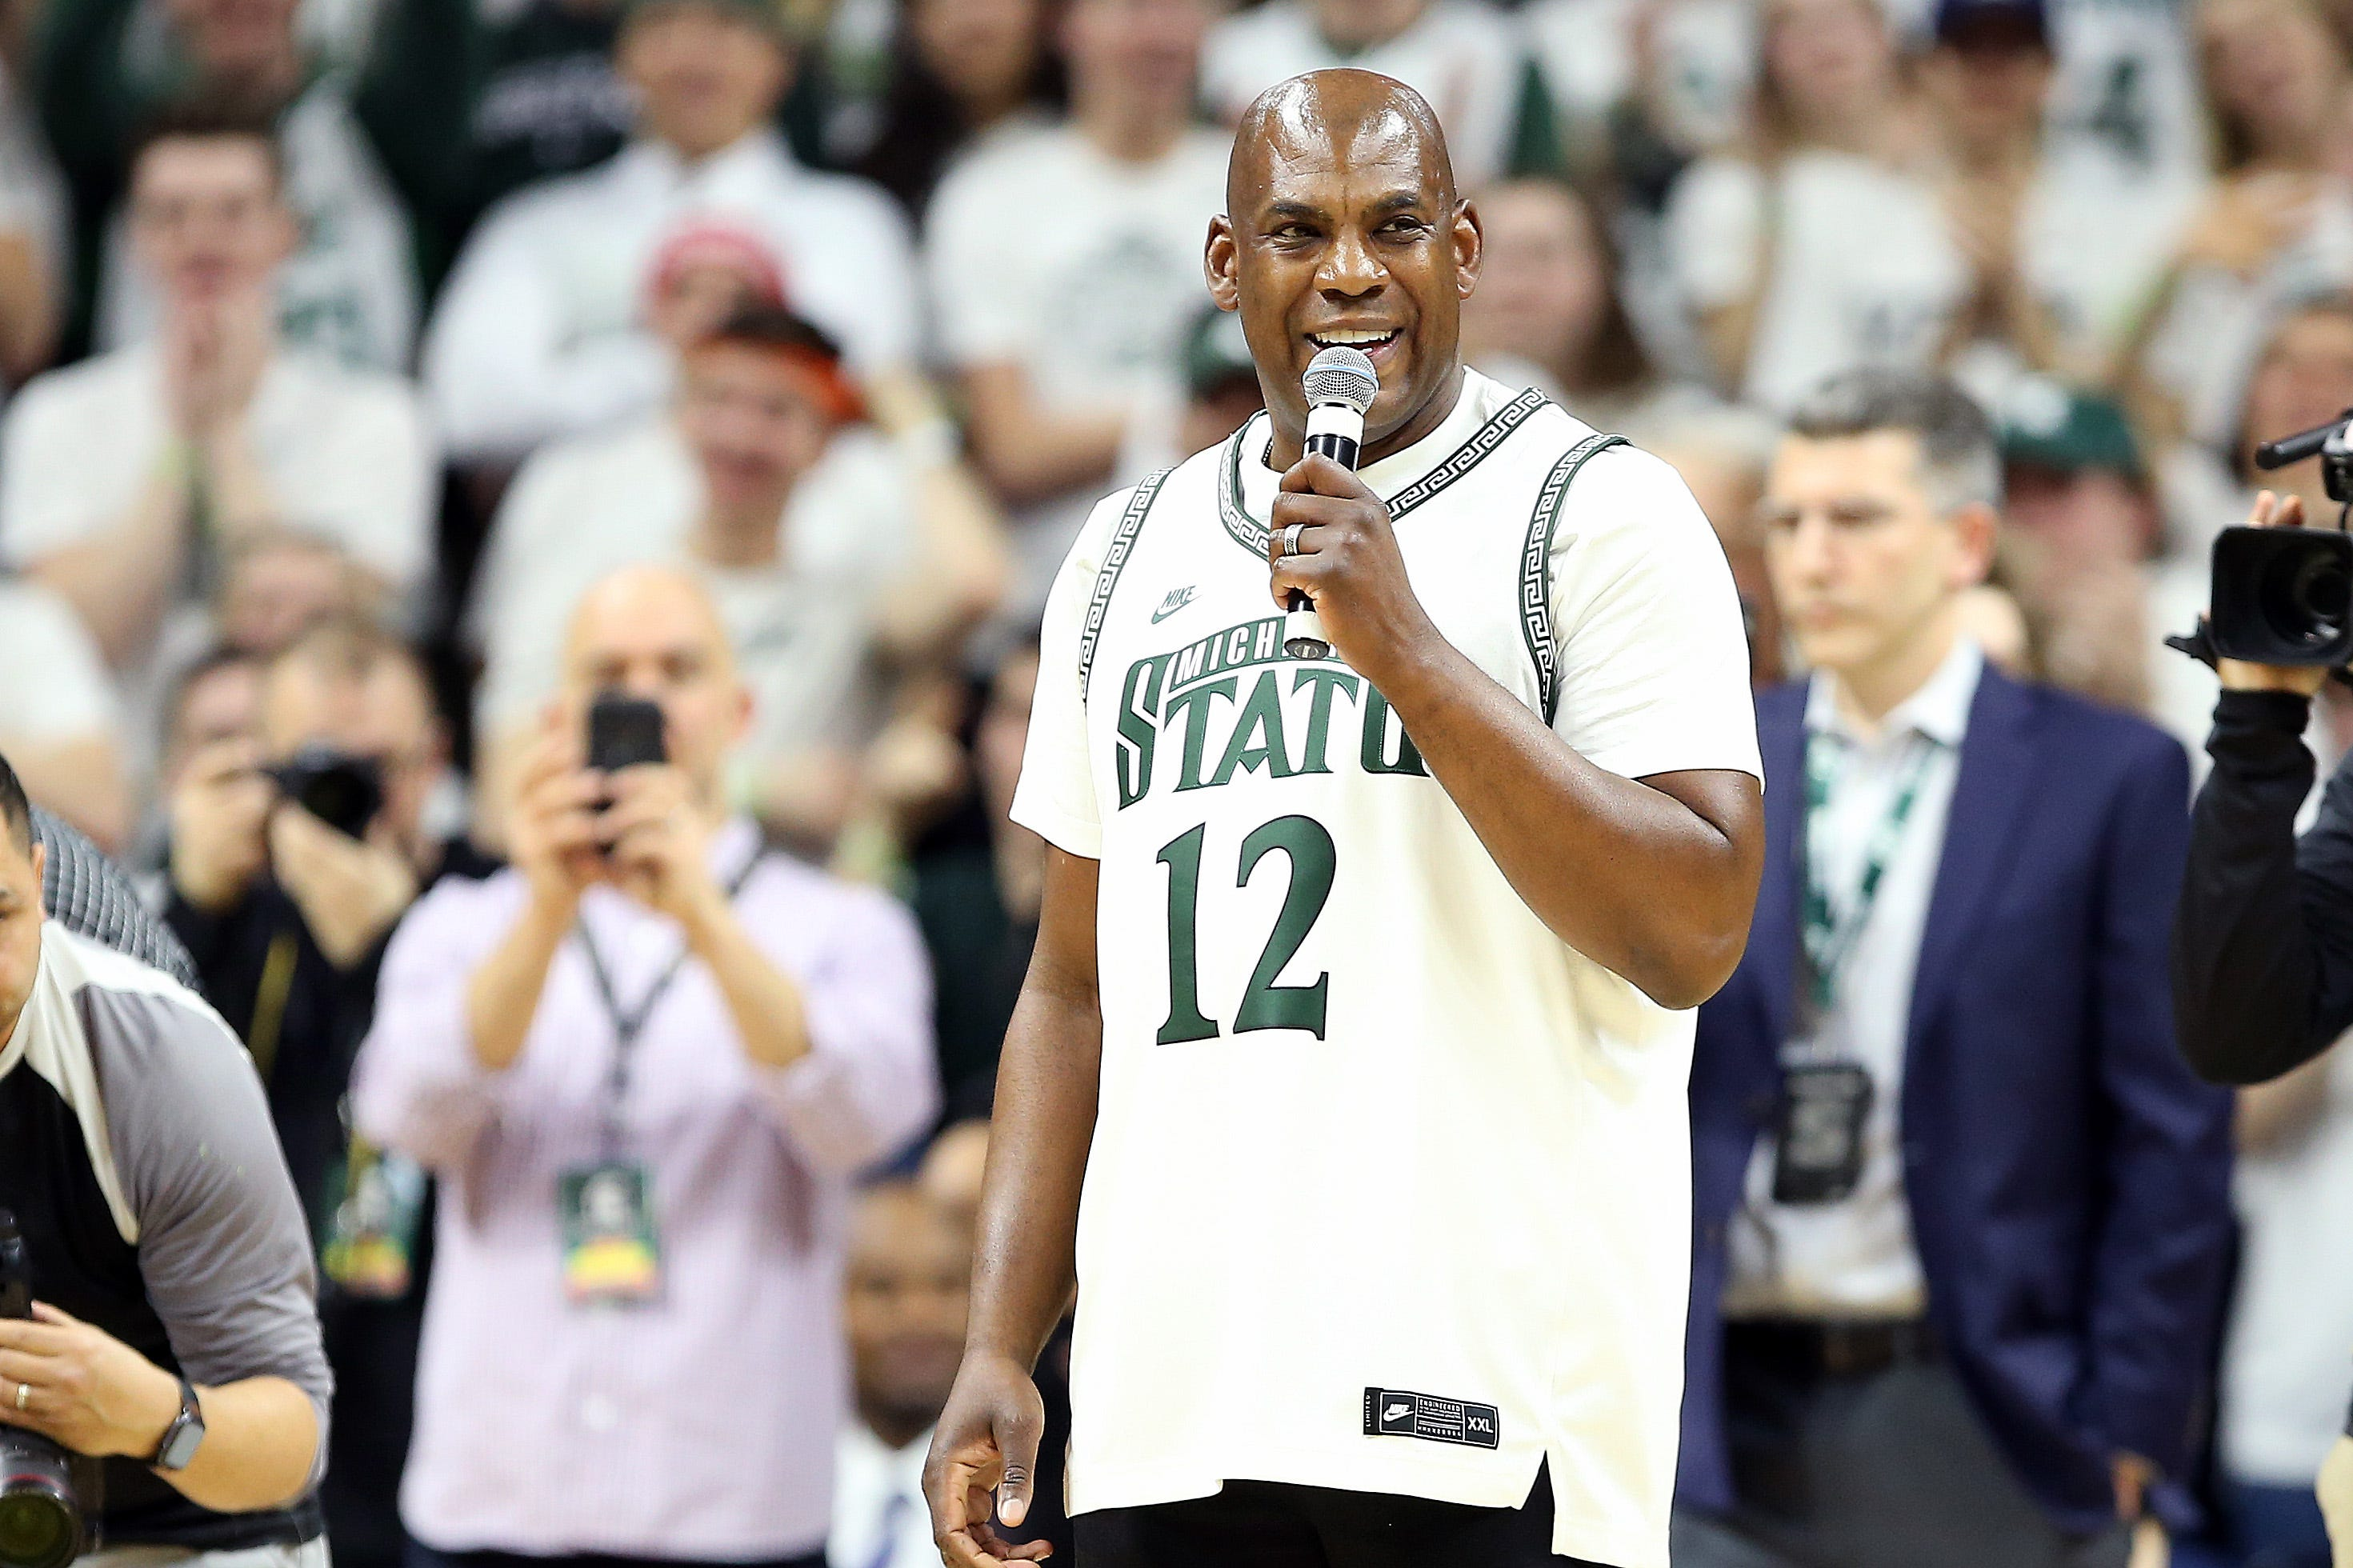 Michigan State football coach Mel Tucker buys dinner for hospital night shift workers